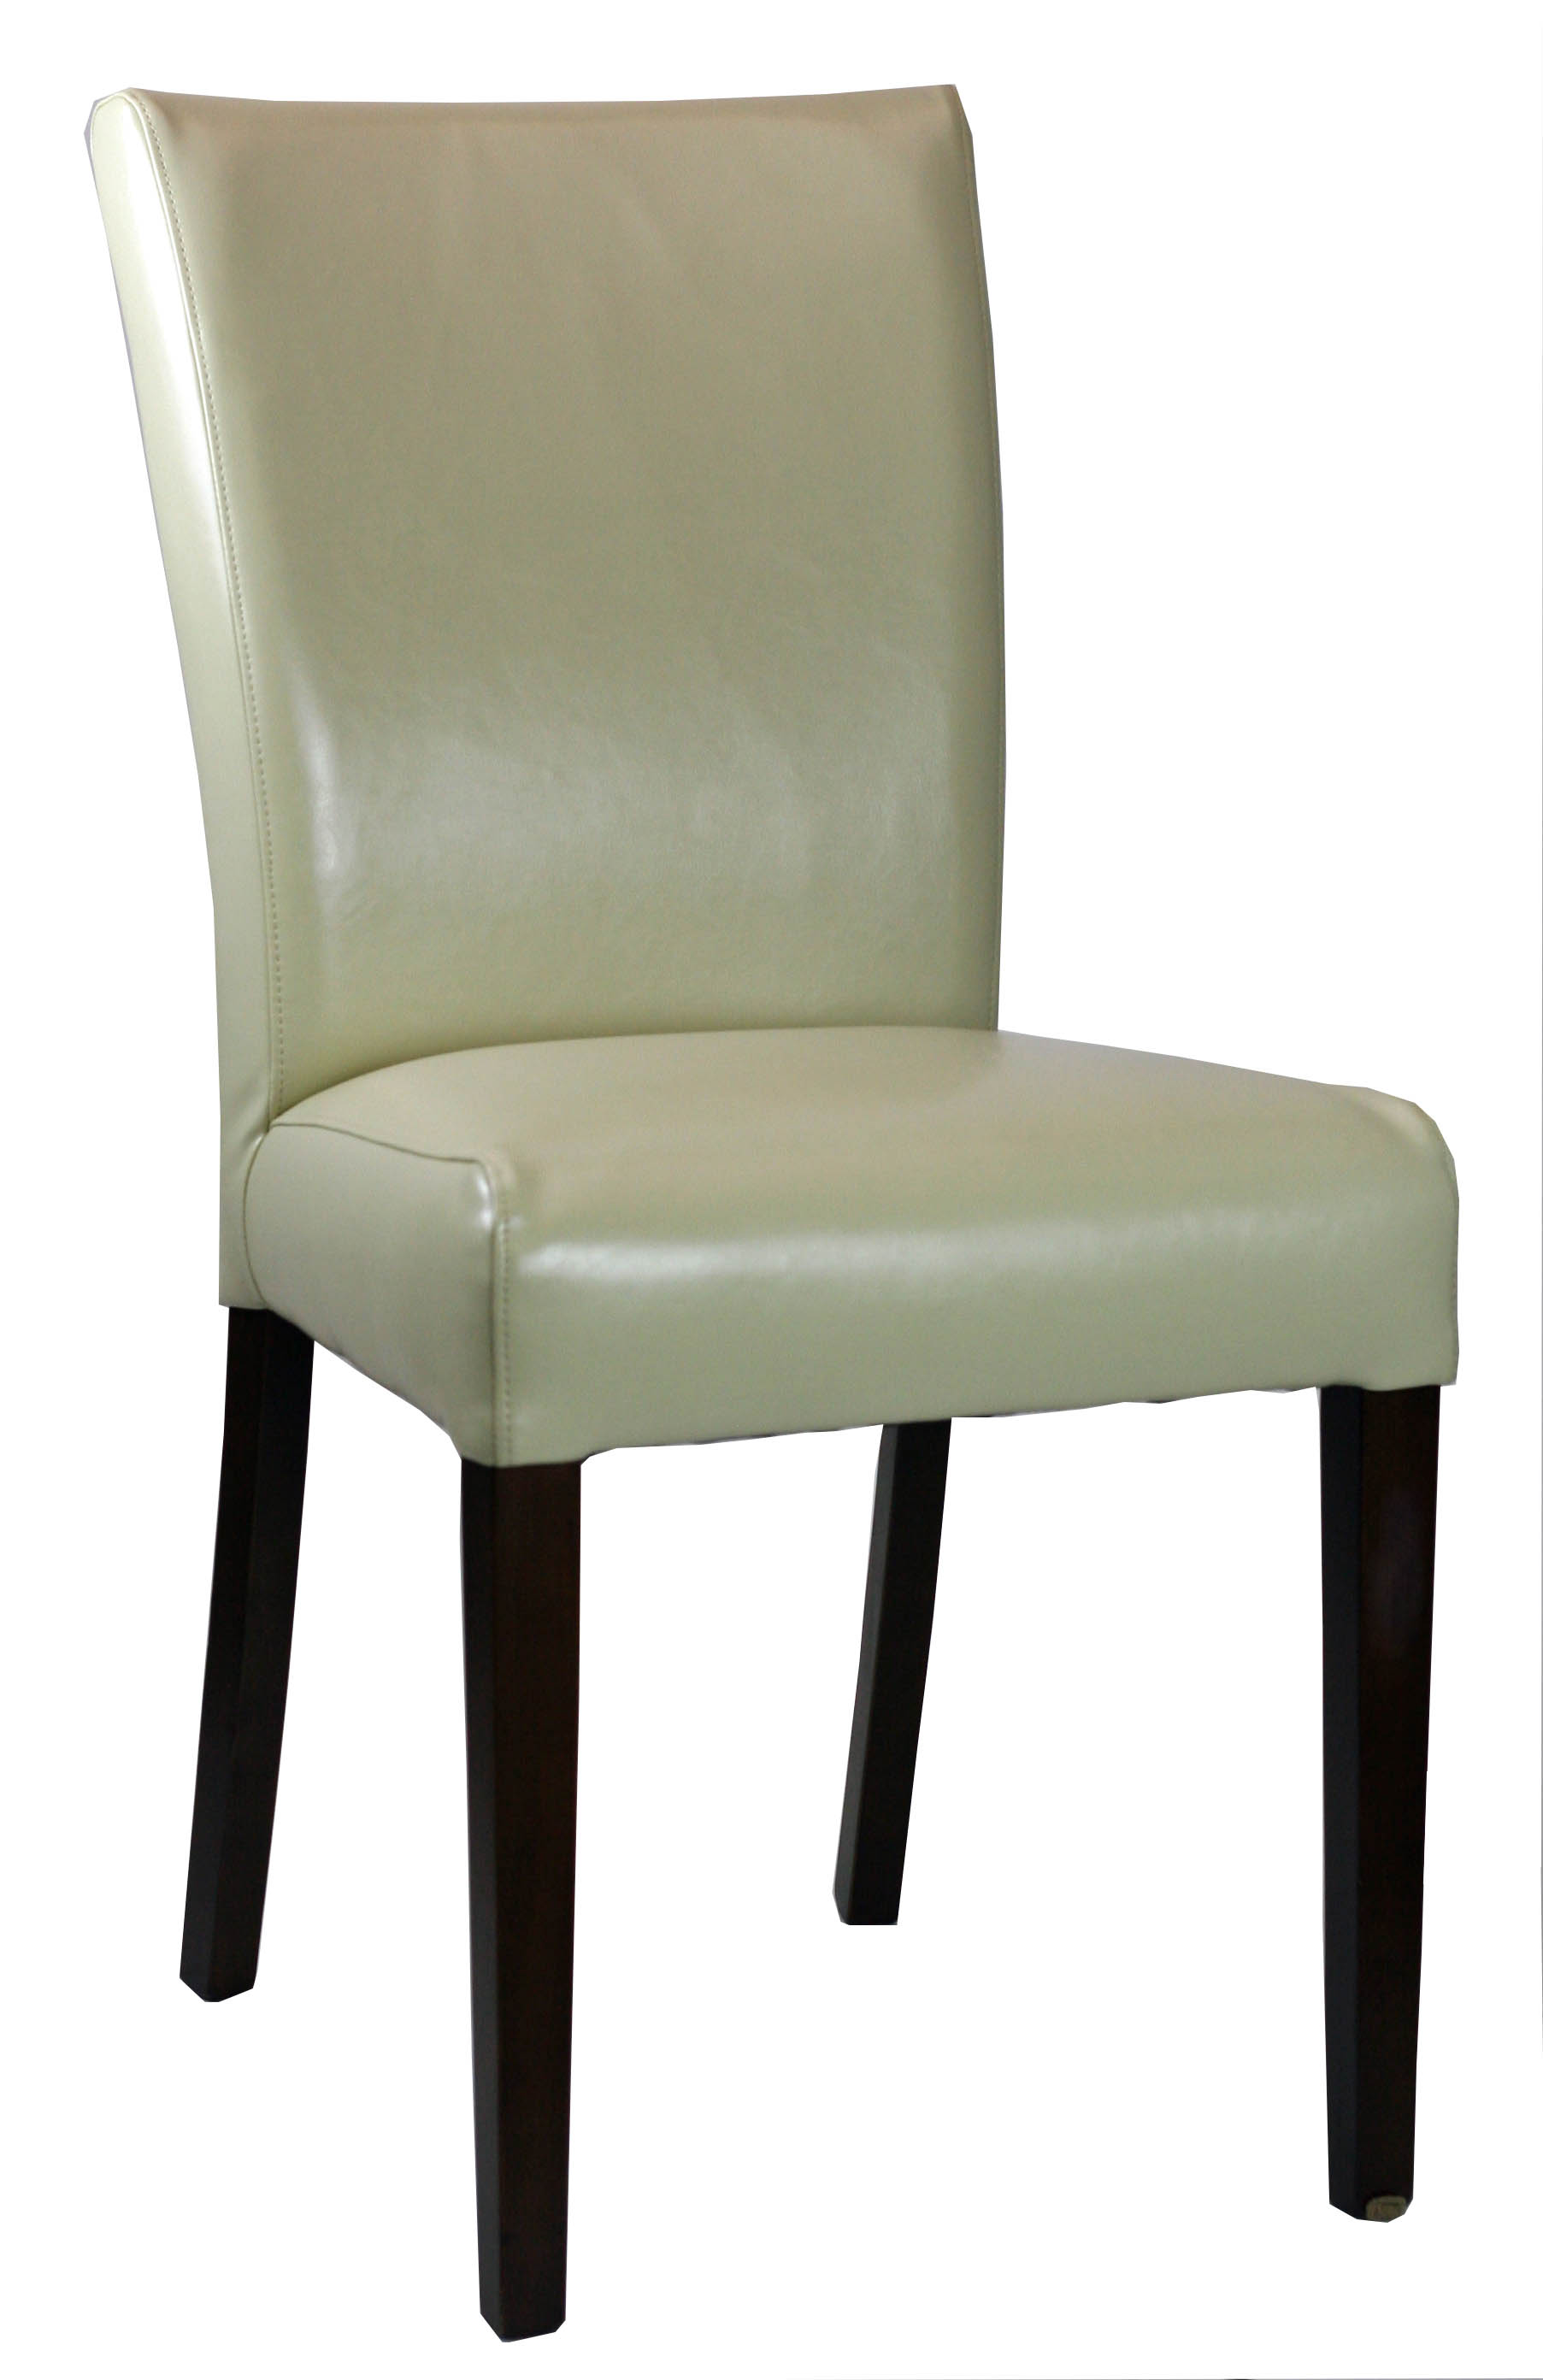 Clearance r 3260 low back dining room chair artefac usa for Low back parsons dining chair